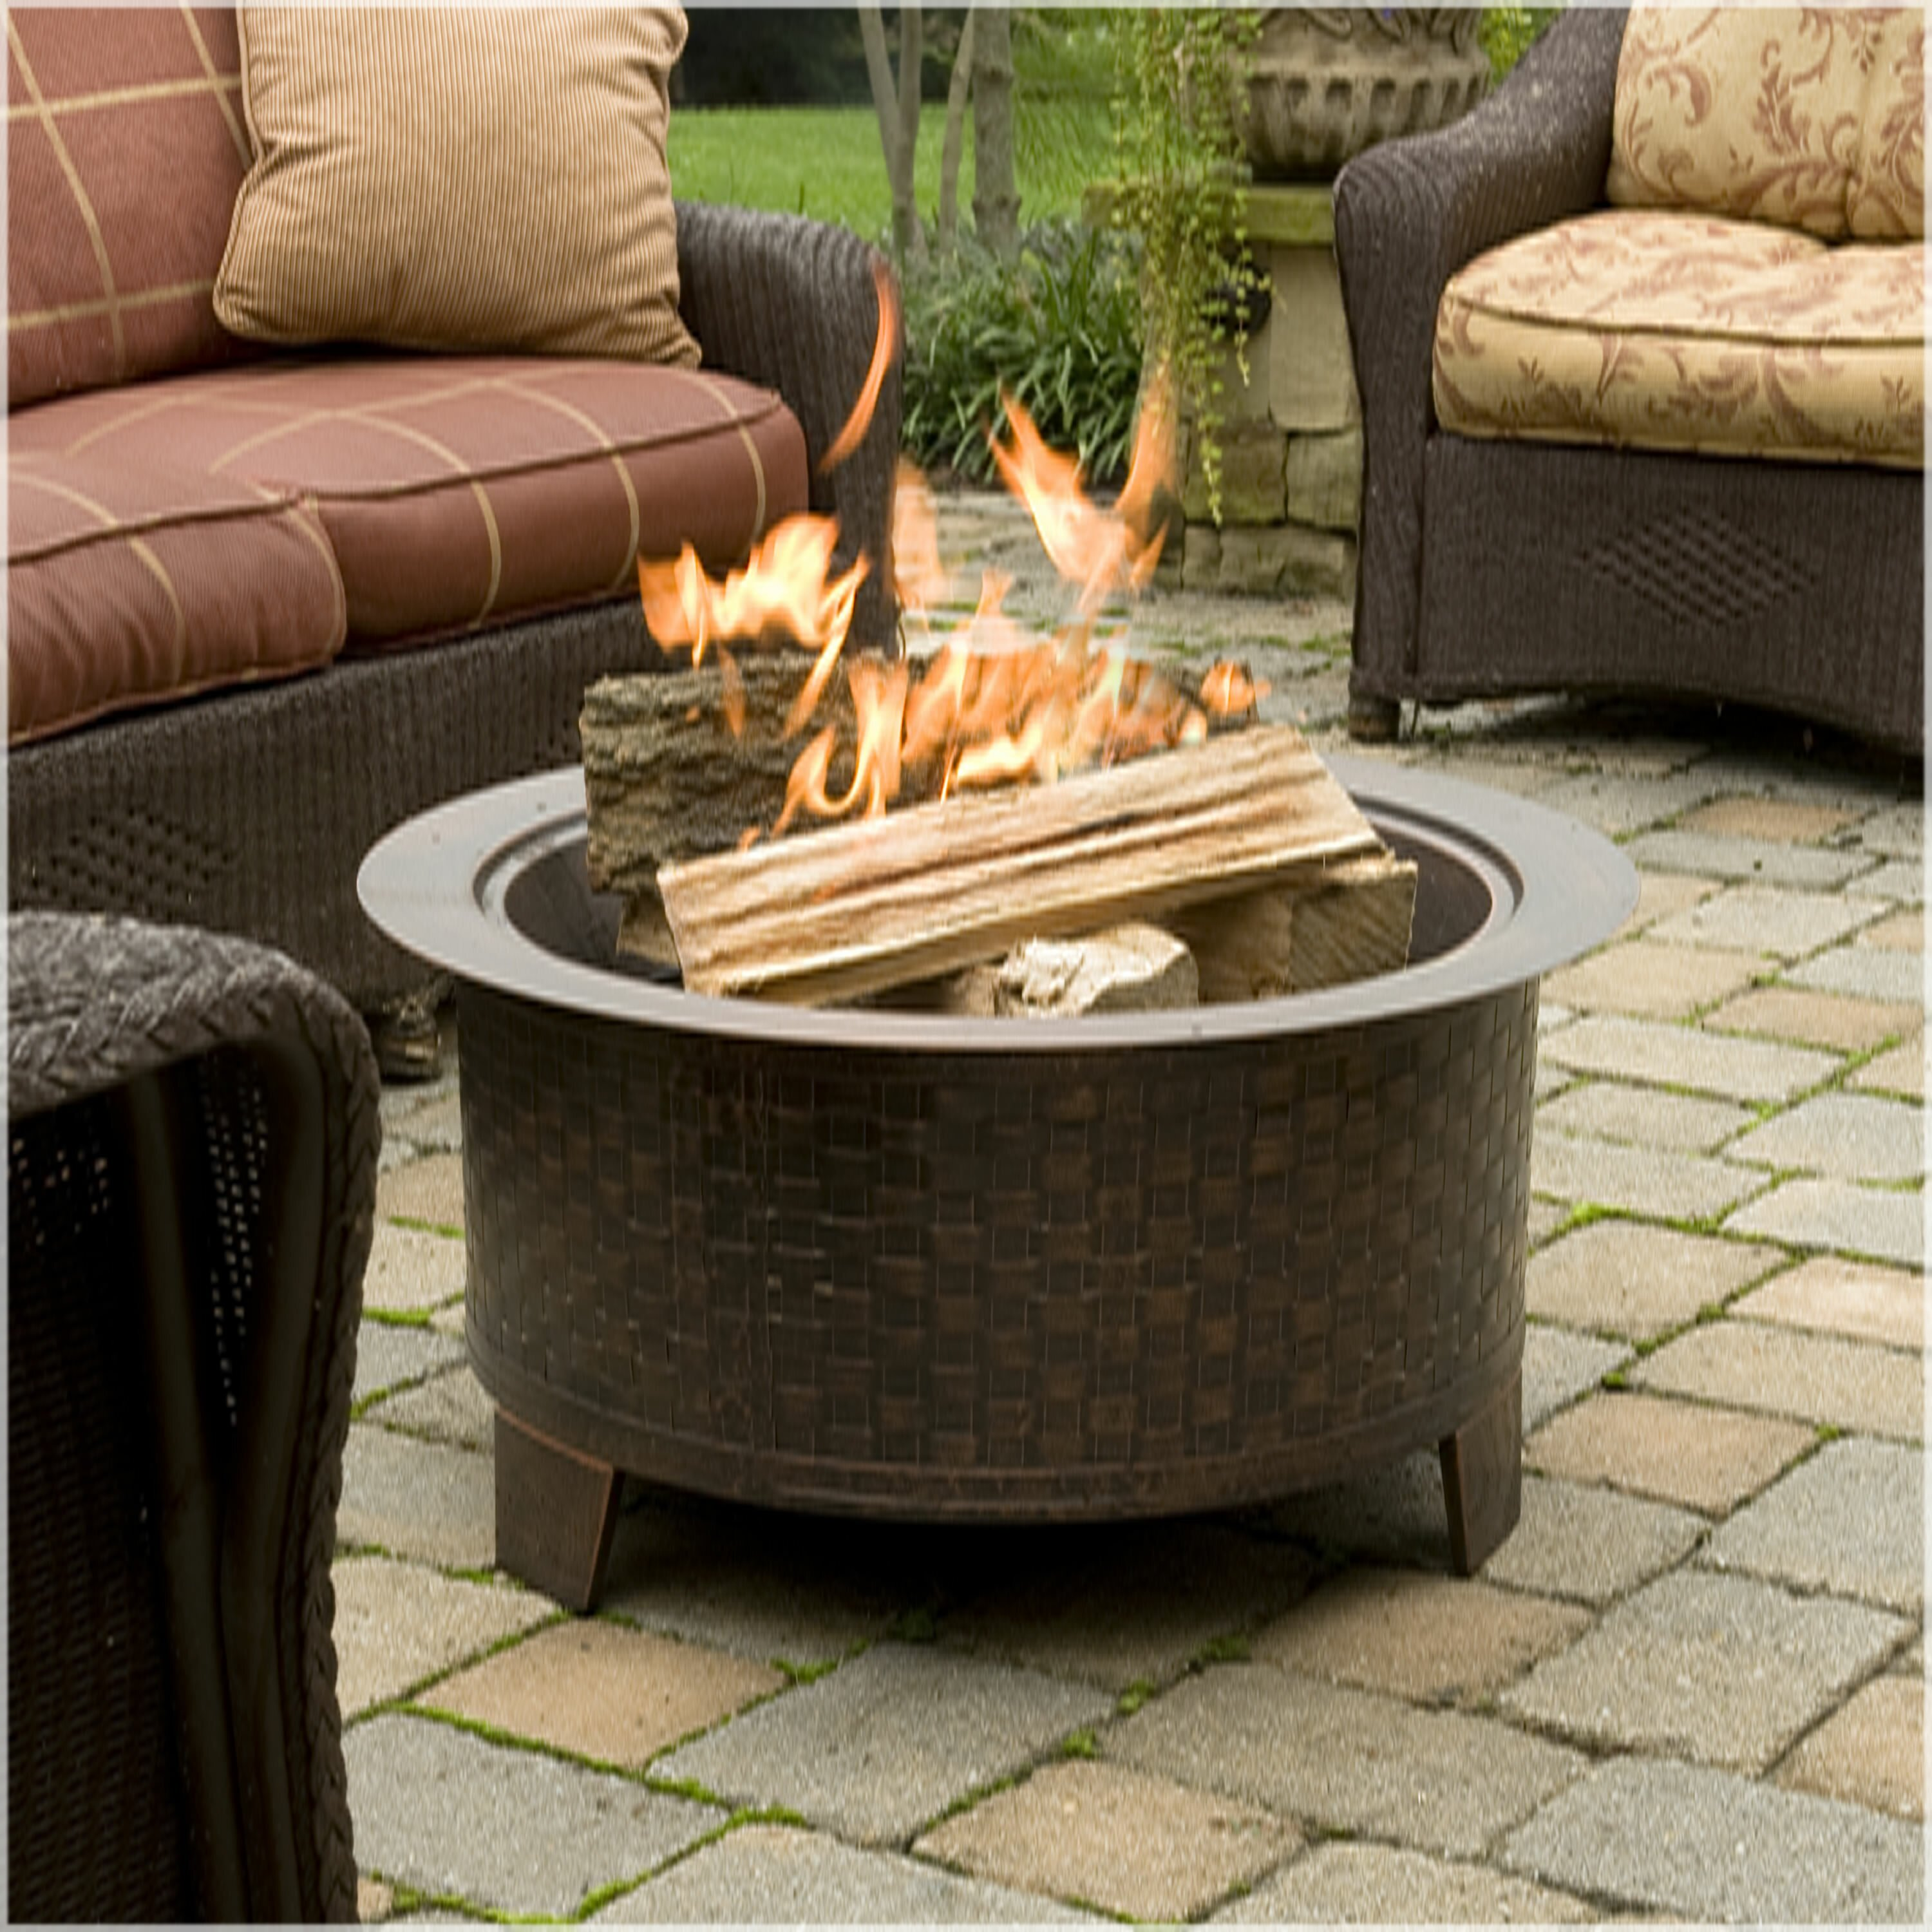 CobraCo Woven Fire Pit & Reviews